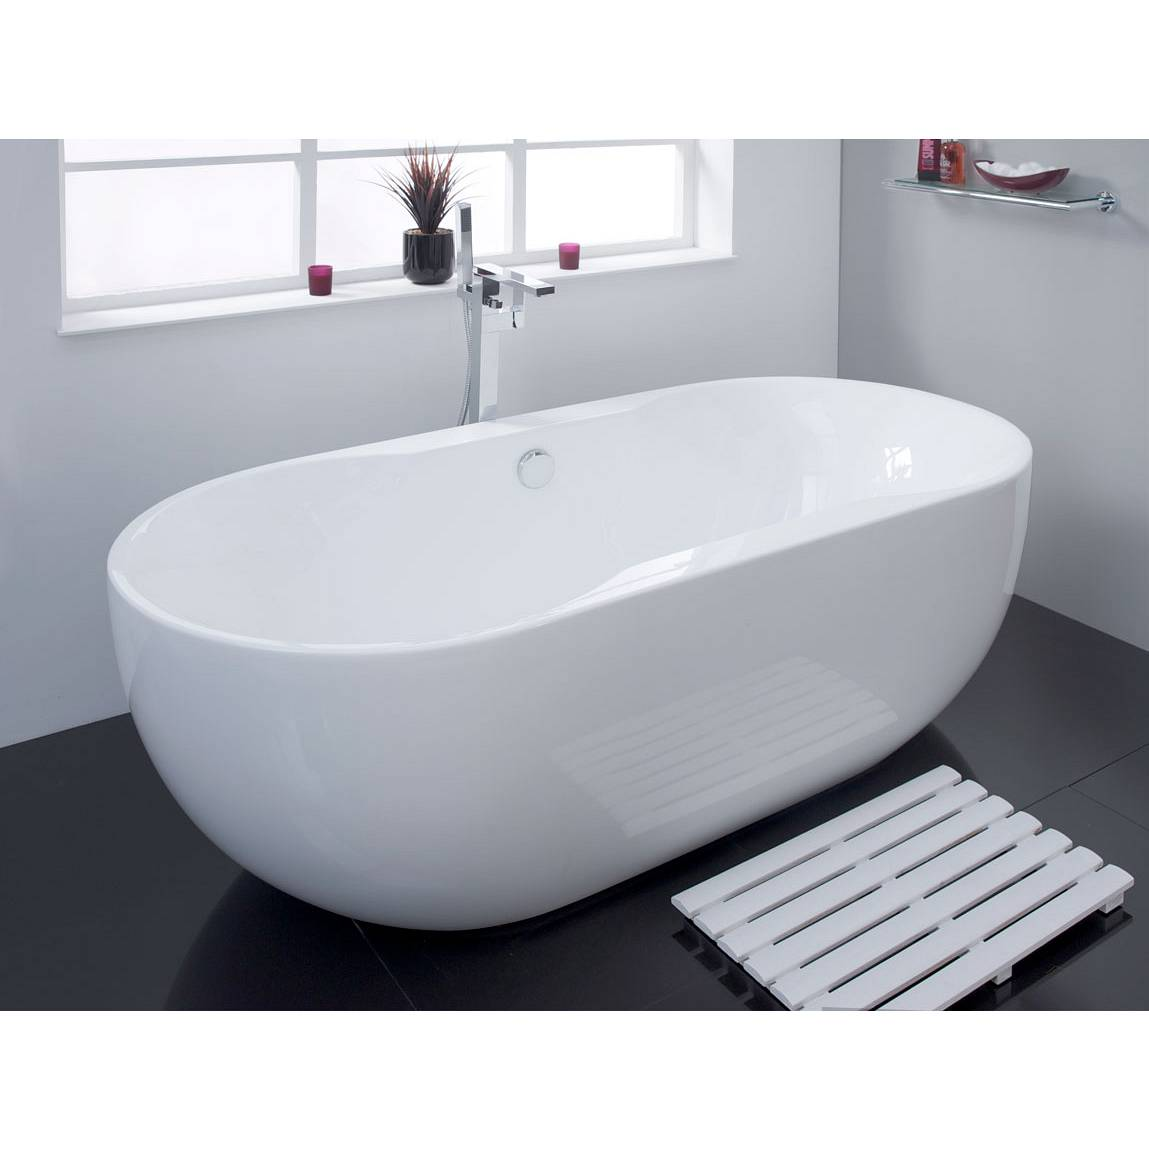 Can a salt bath a day keep weight away colette baron reid for What is the best bathtub